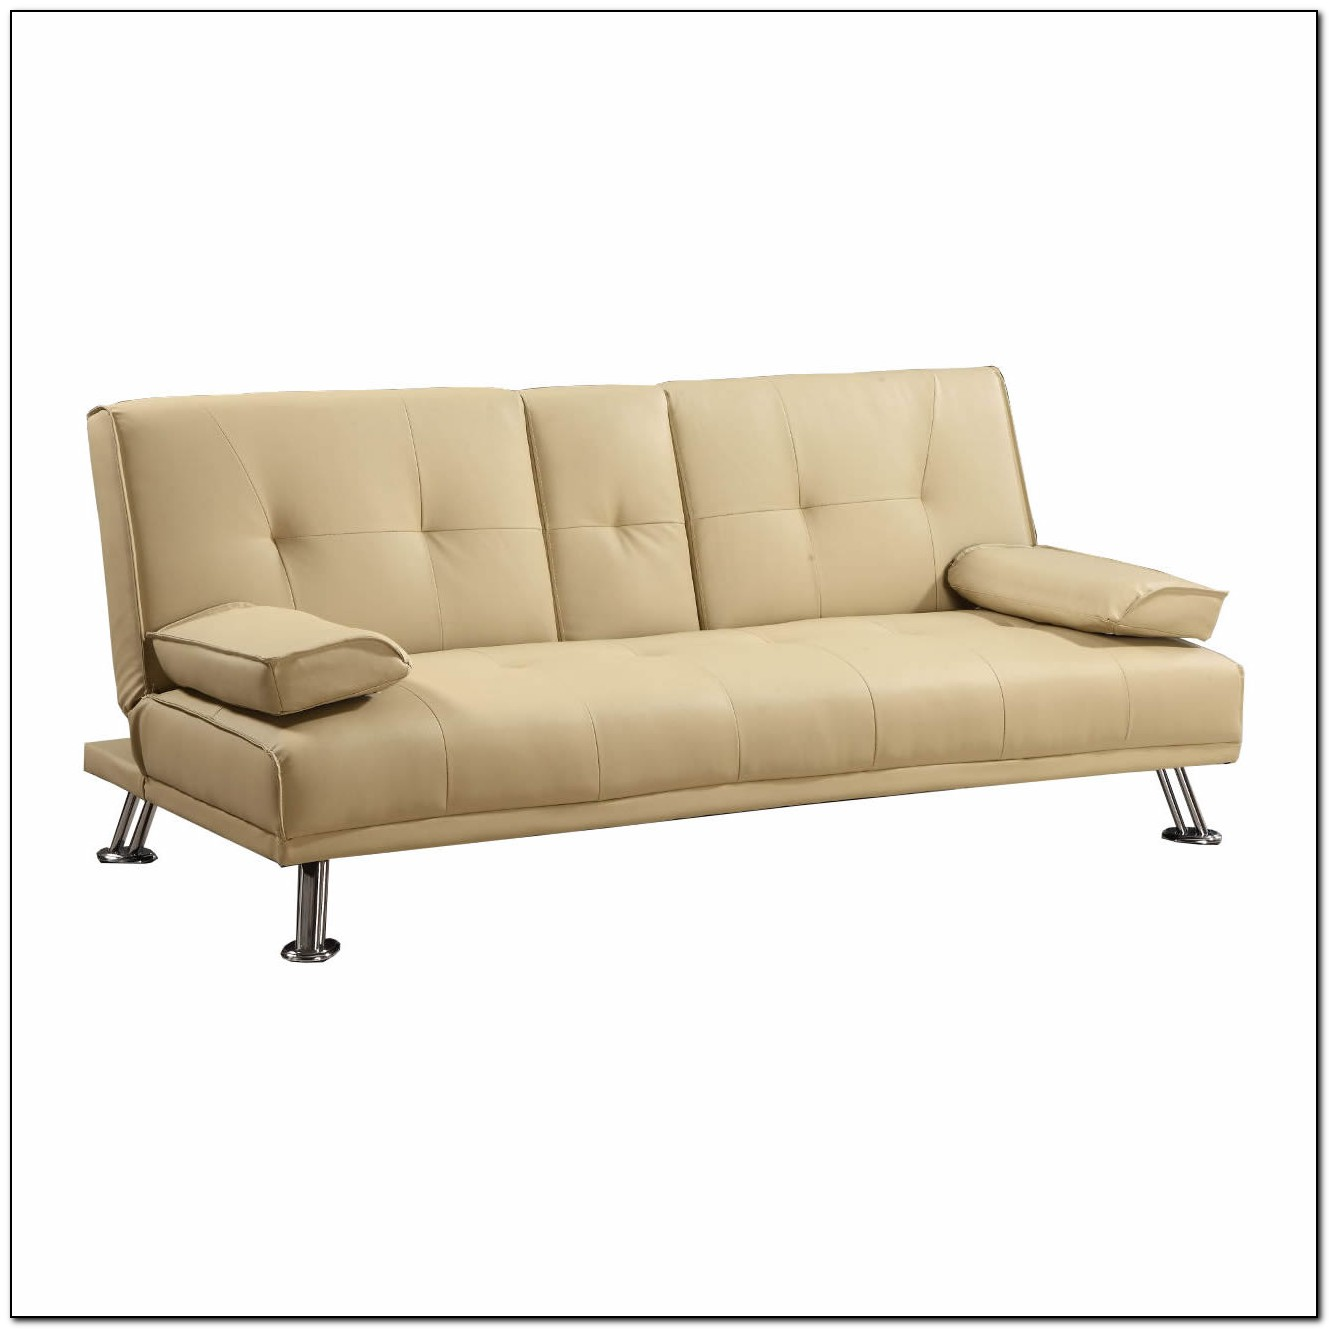 faux leather sofas and chairs natural sofa cleaner uk home design ideas